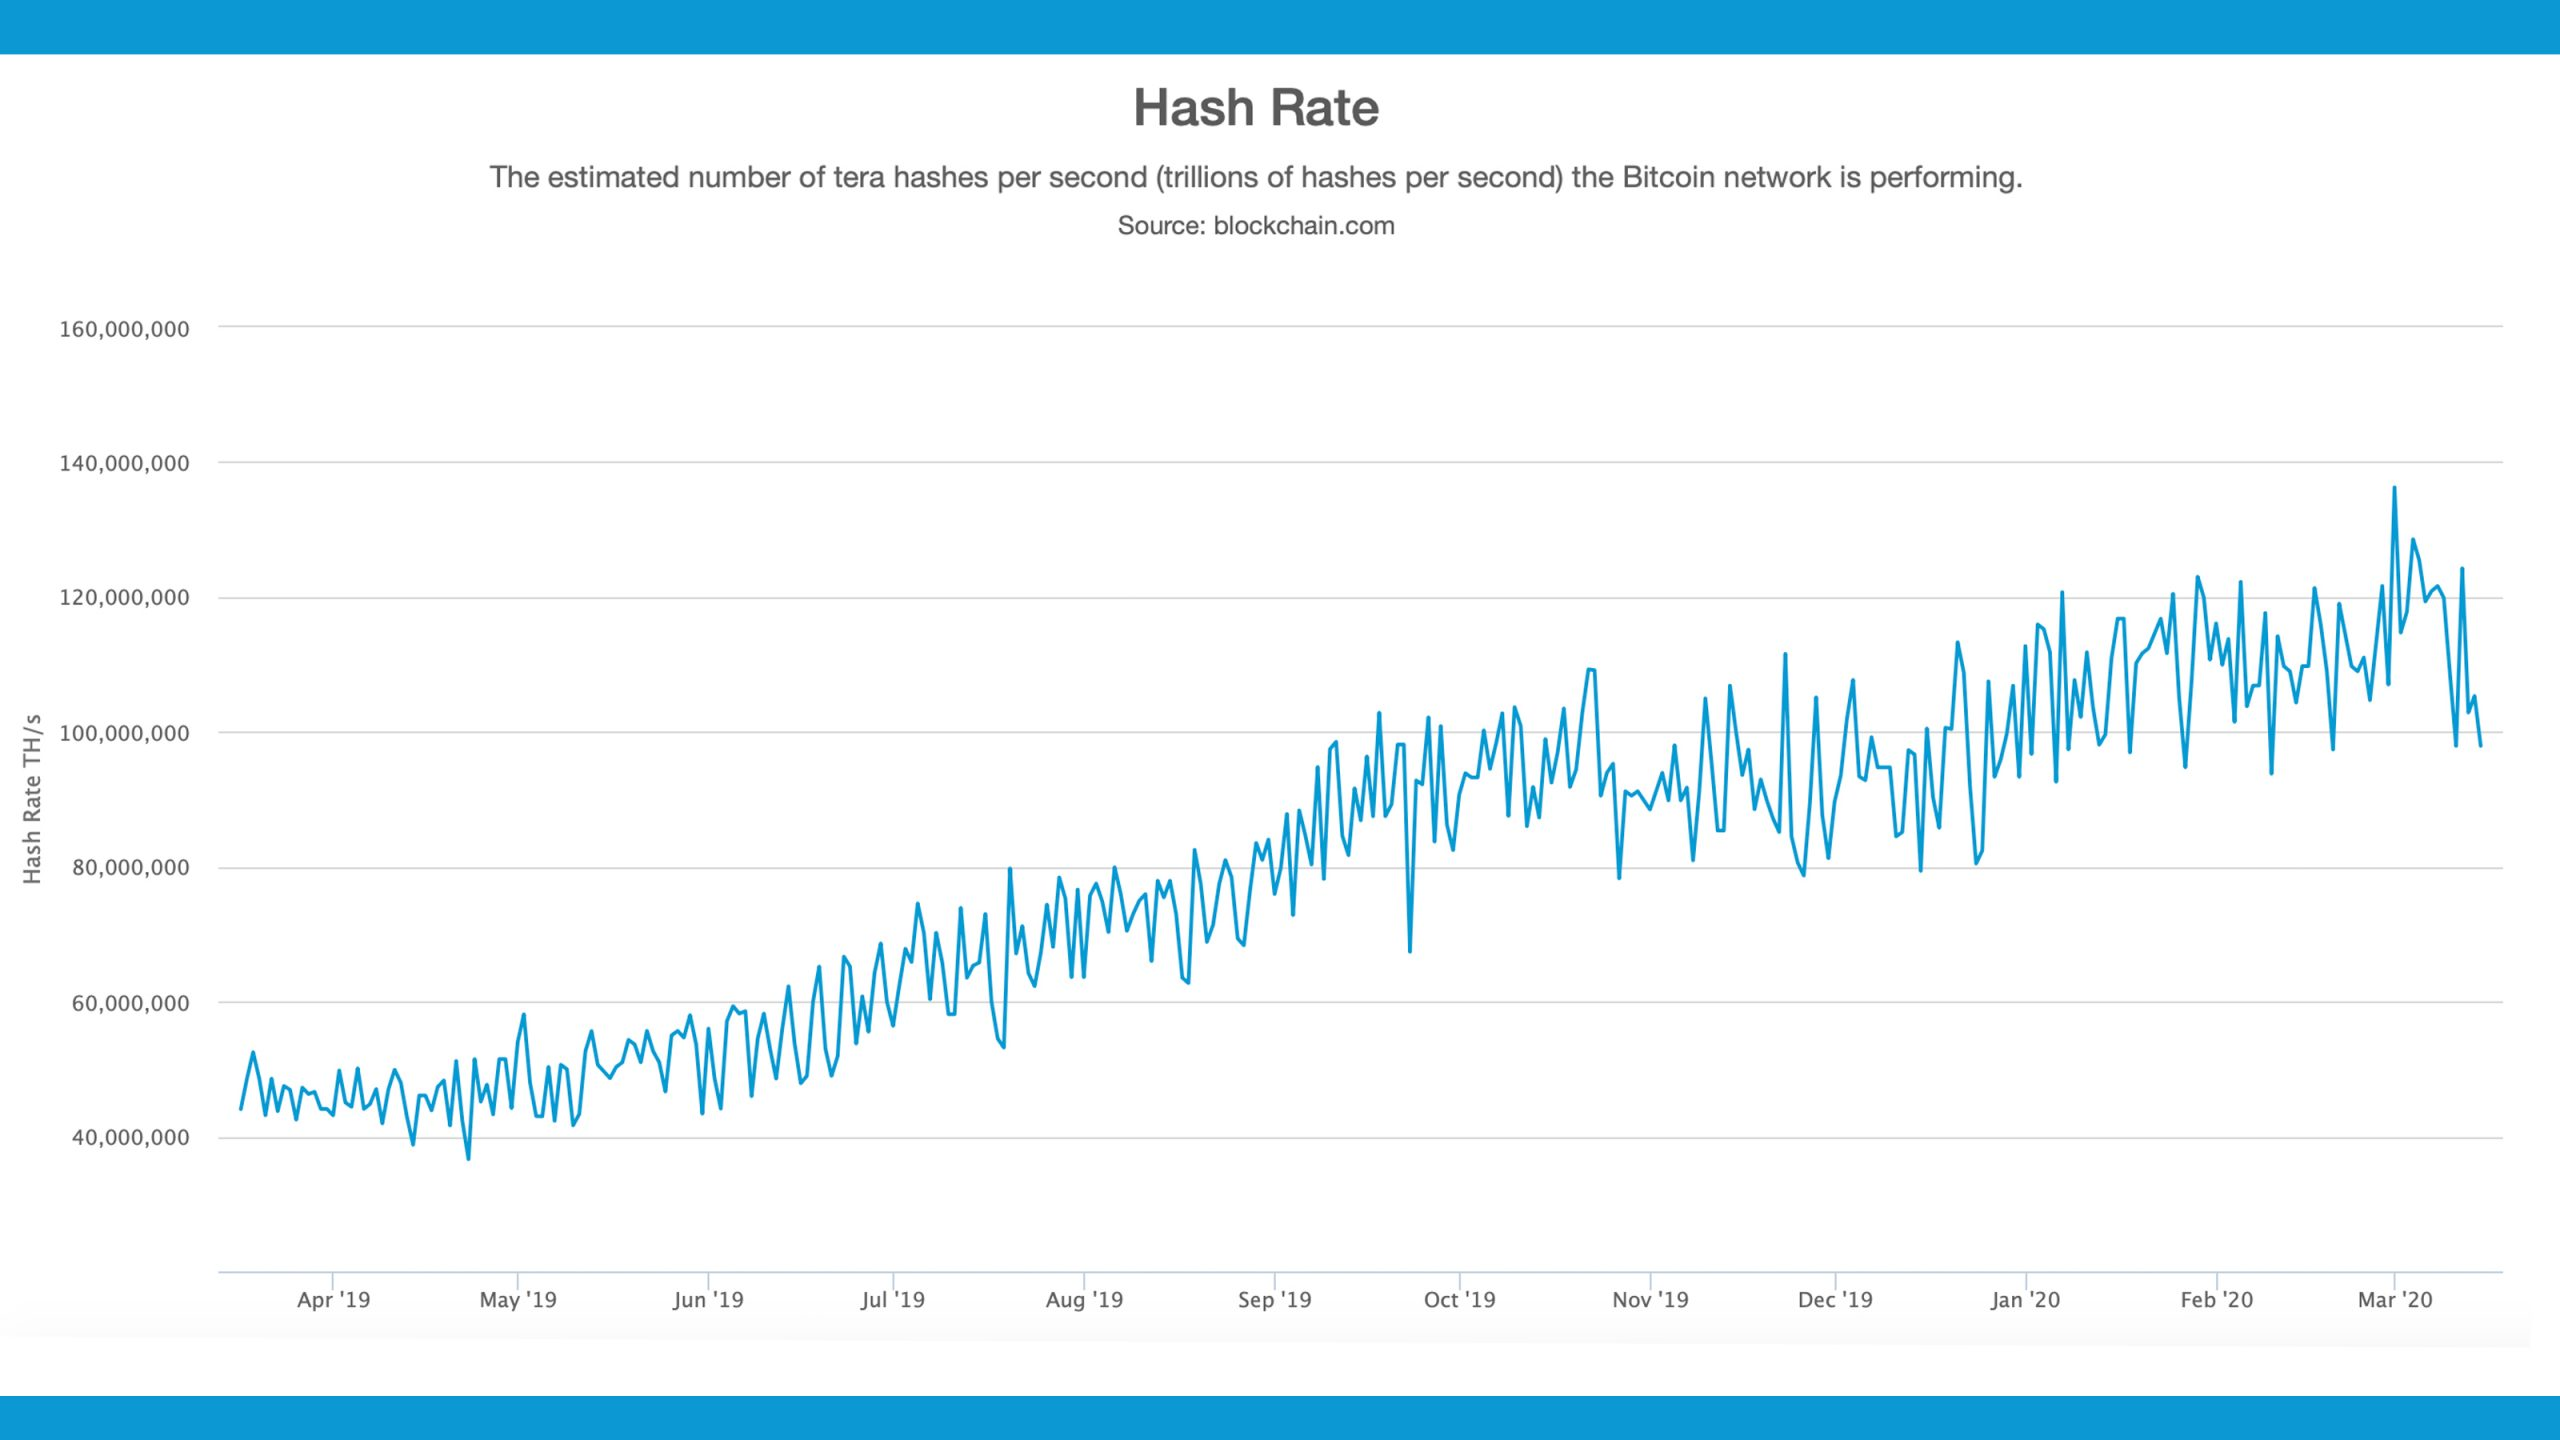 Hashrate Follows Price Drop - 20% Lower Before the Bitcoin Halving